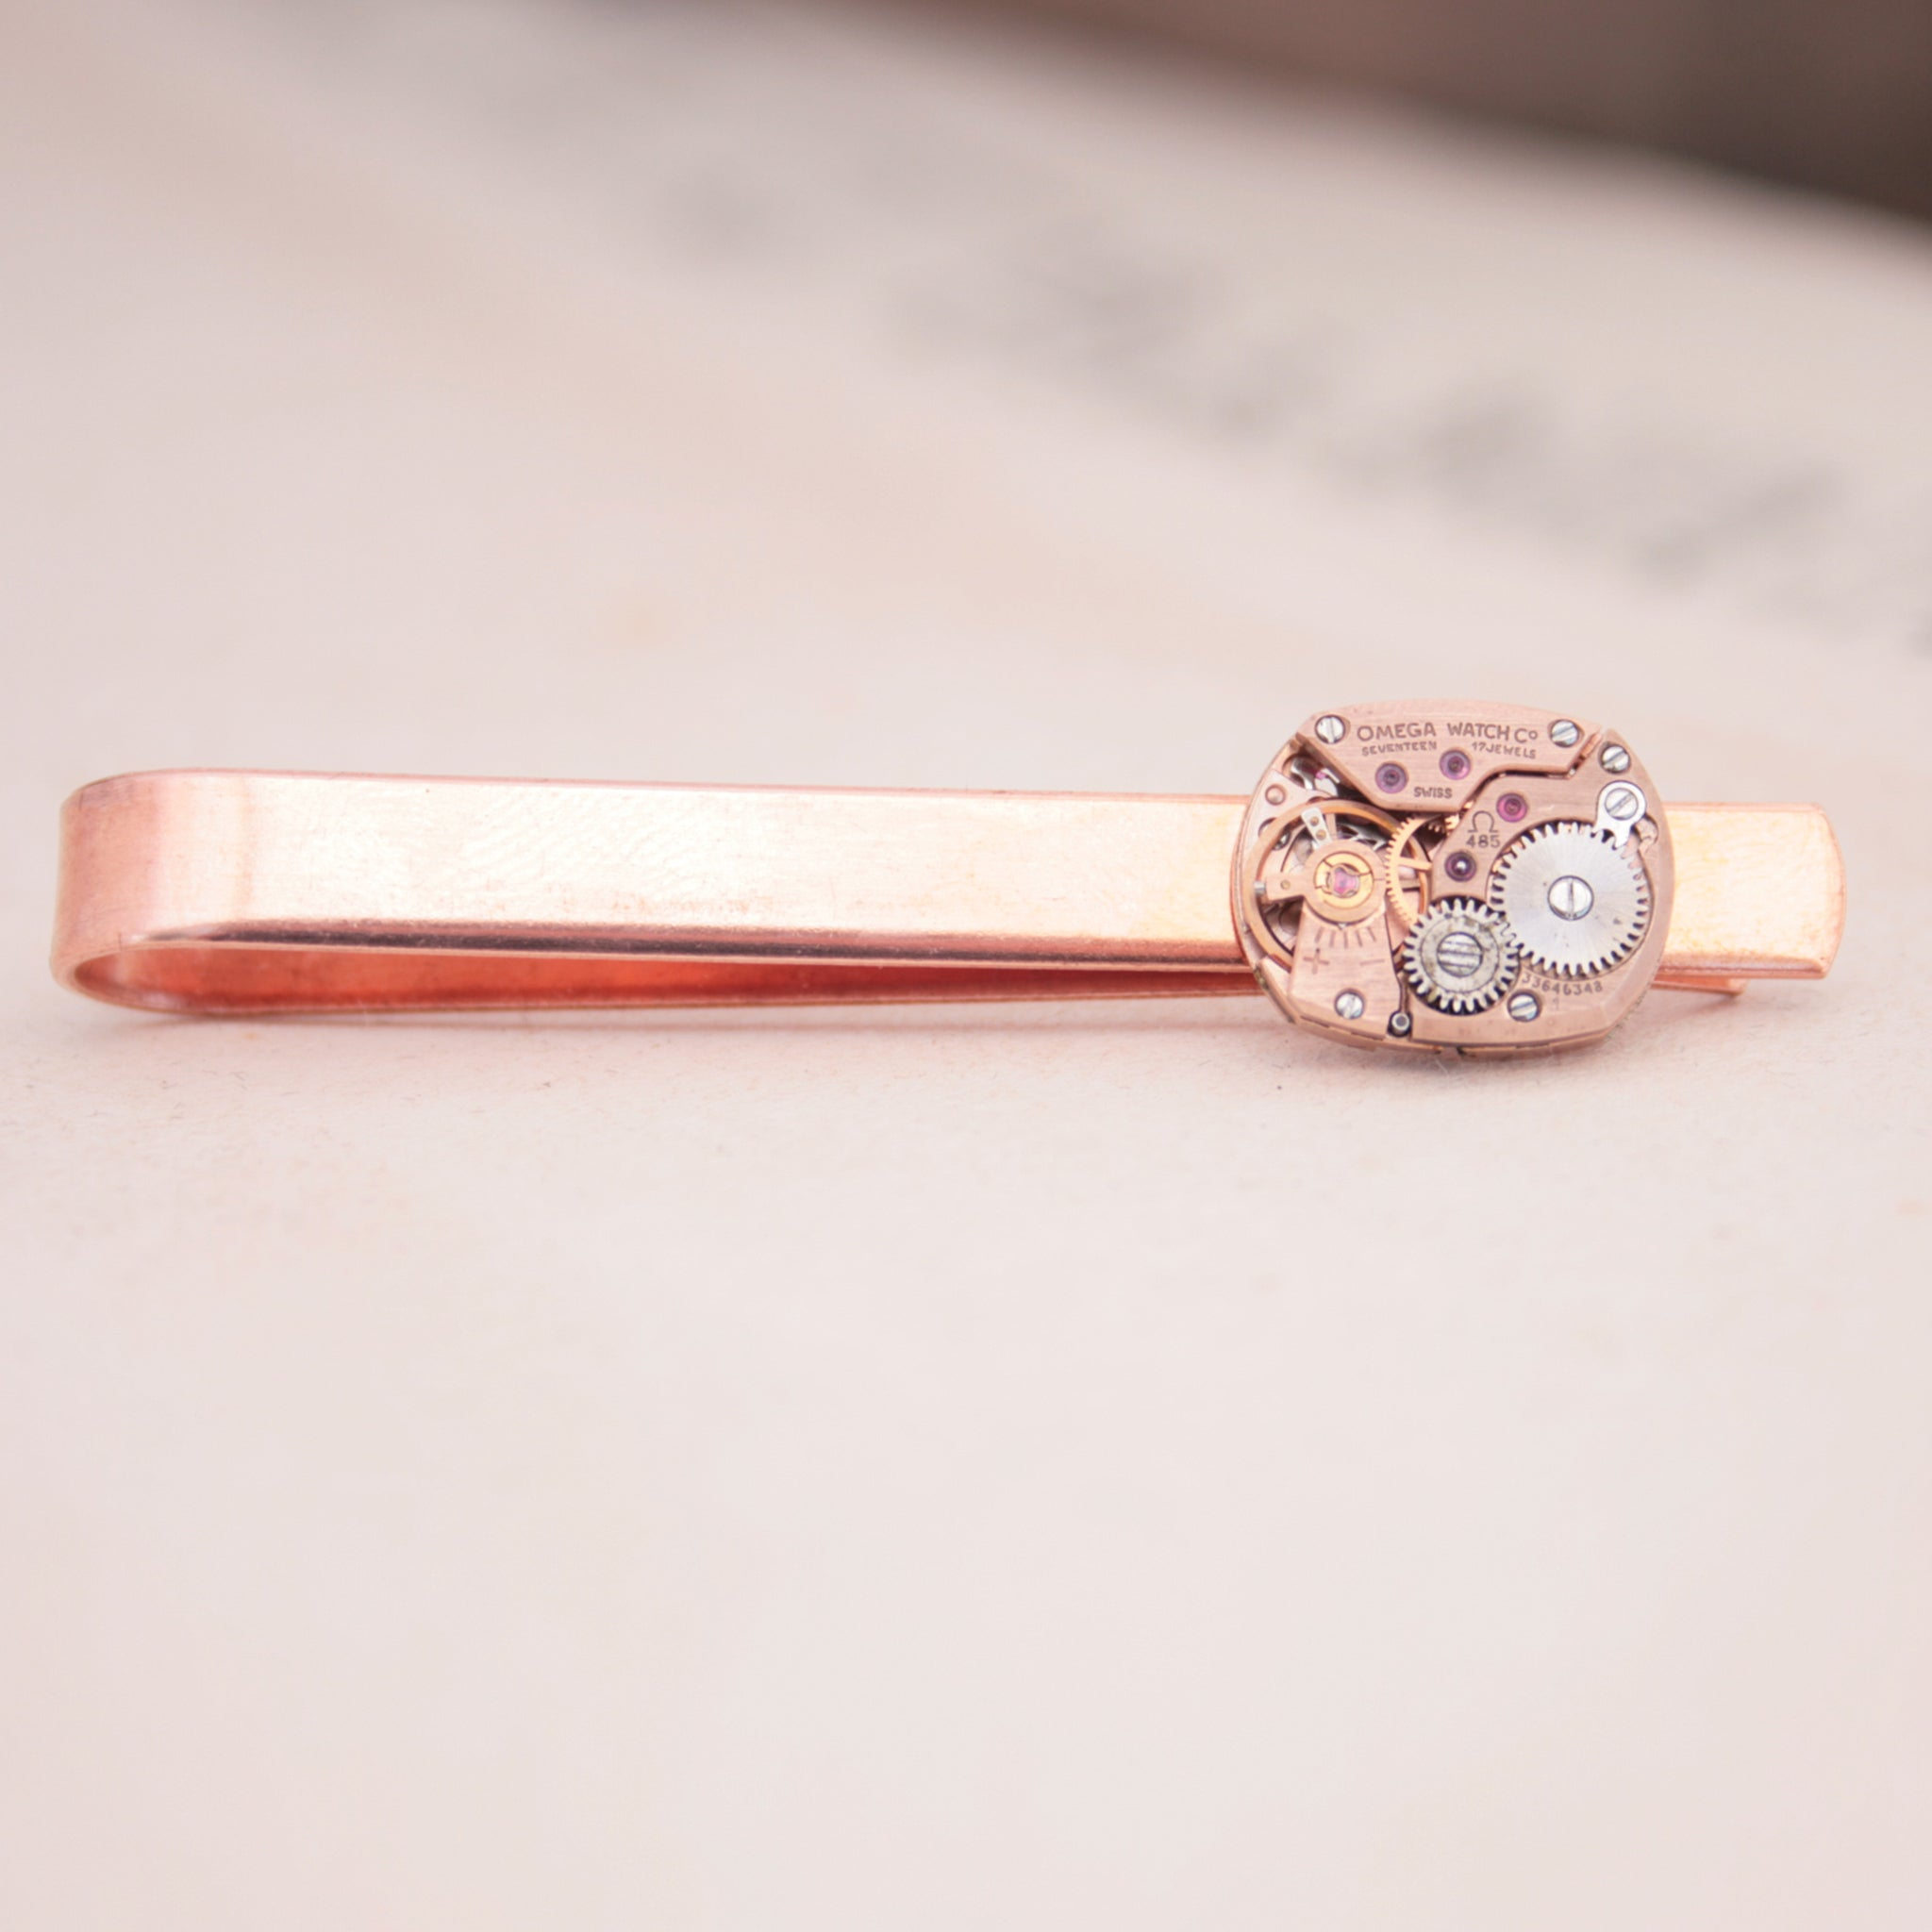 Omega Watch Copper Tie Clip